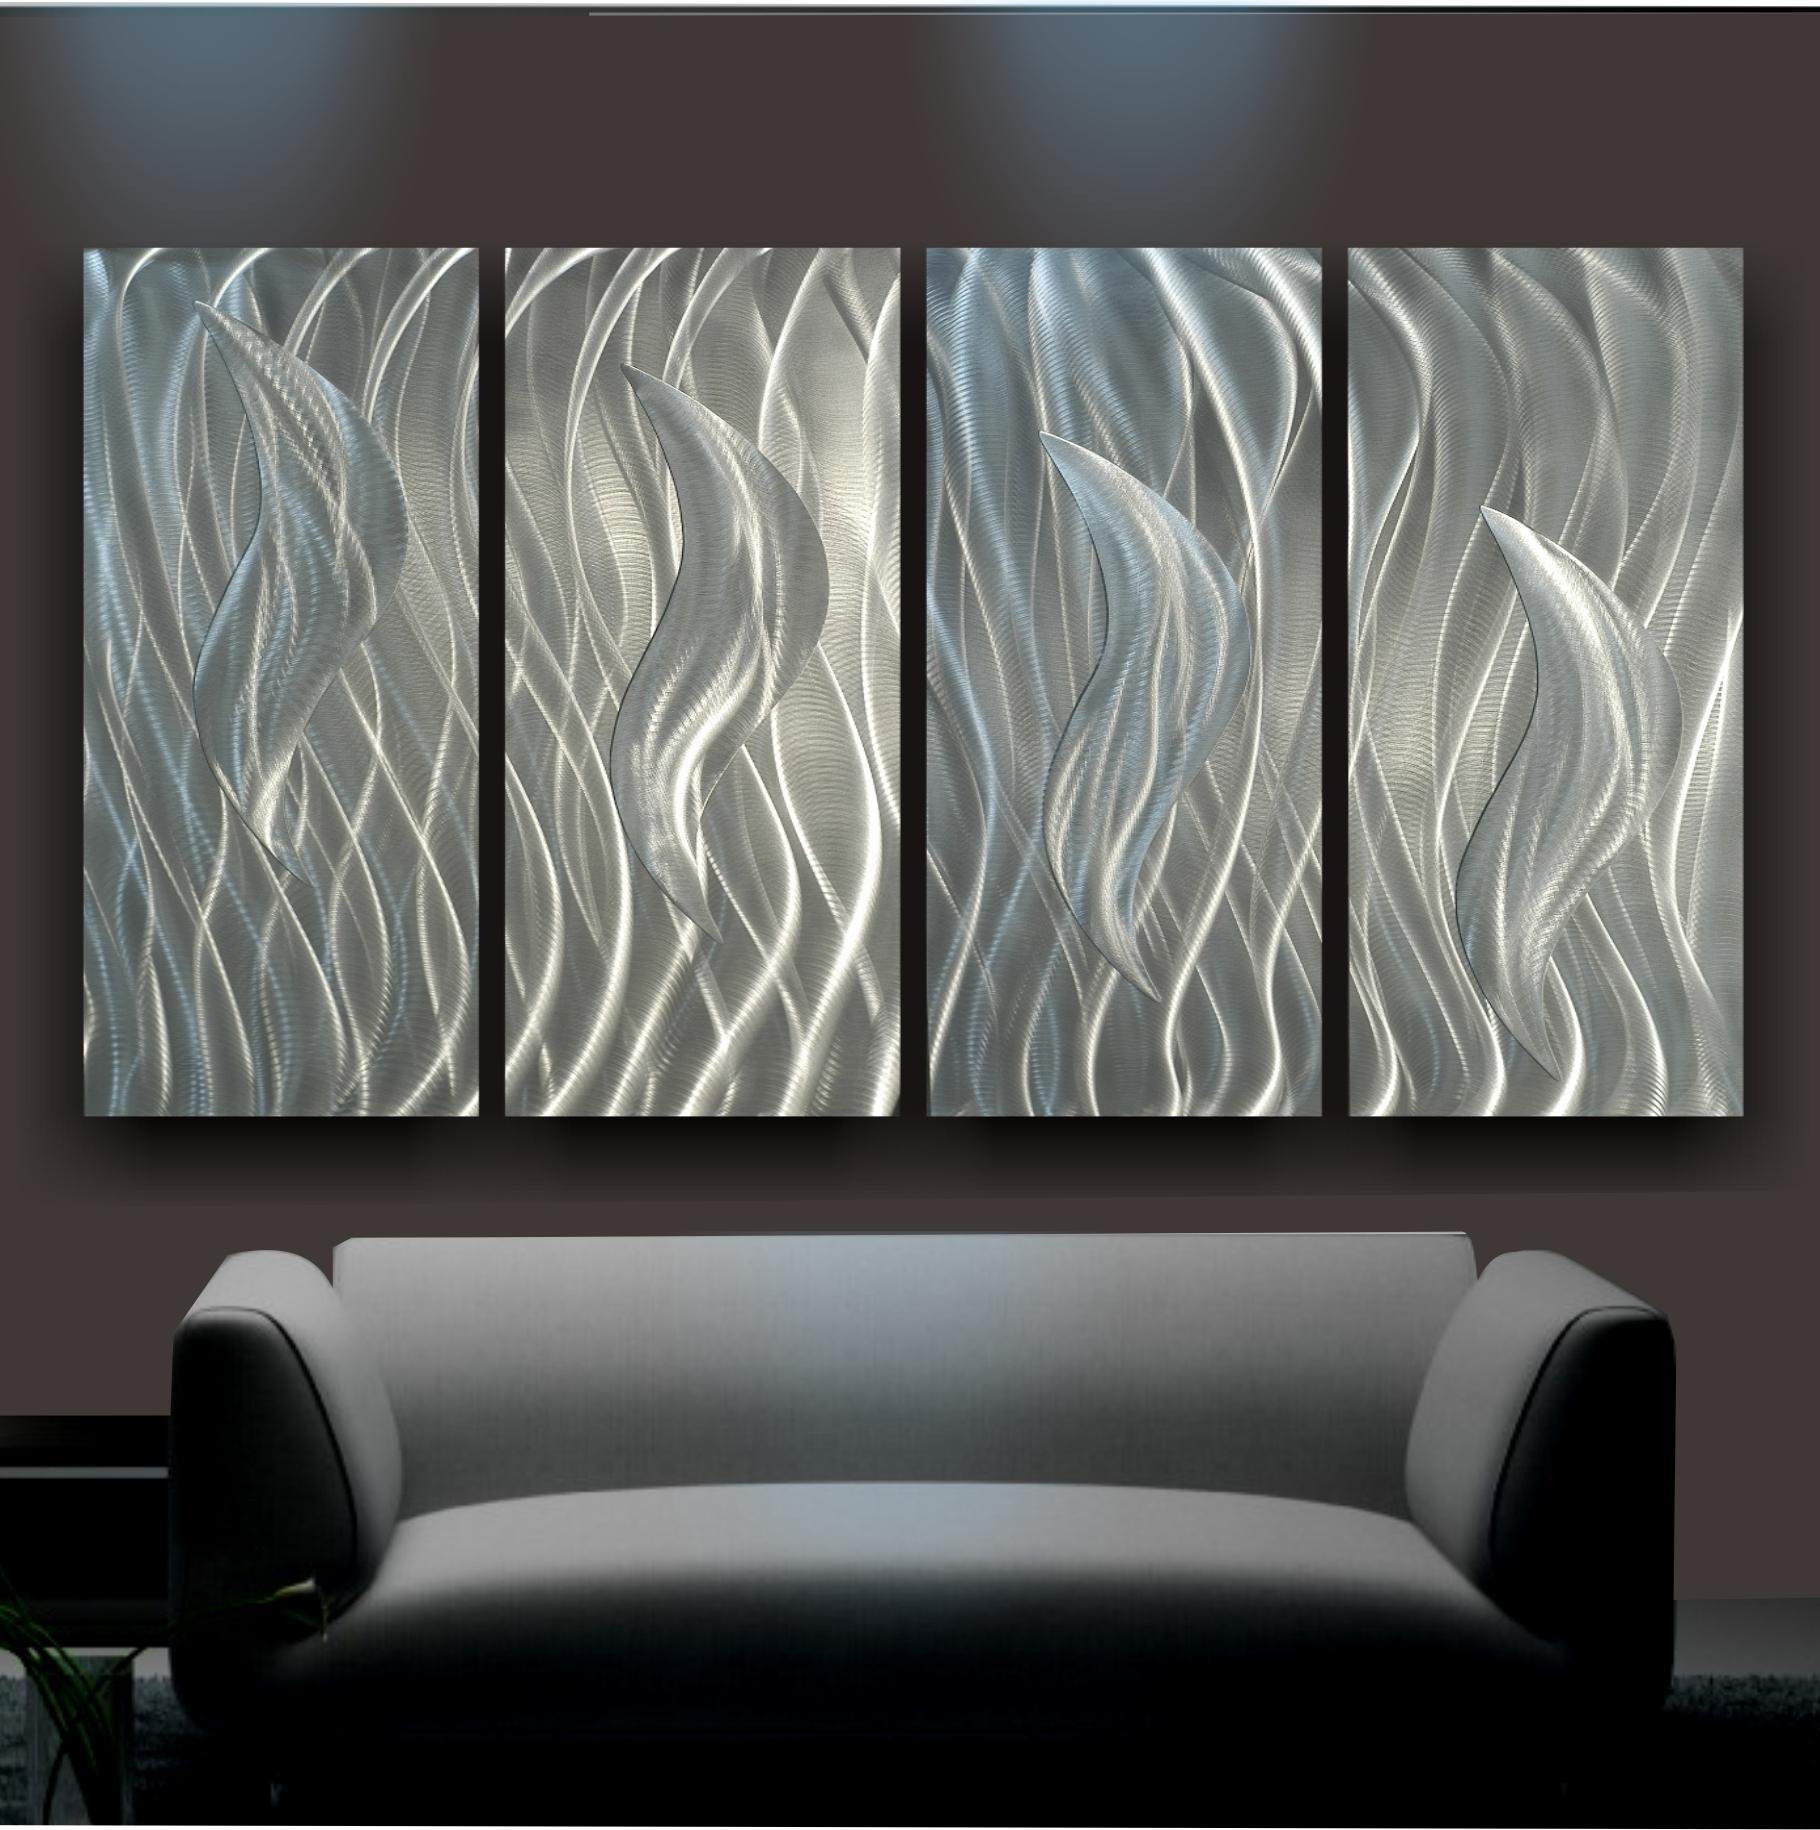 Metal Wall Designs Cheap Metal Wall Designs | Home Design Ideas For Inexpensive Metal Wall Art (Image 15 of 20)